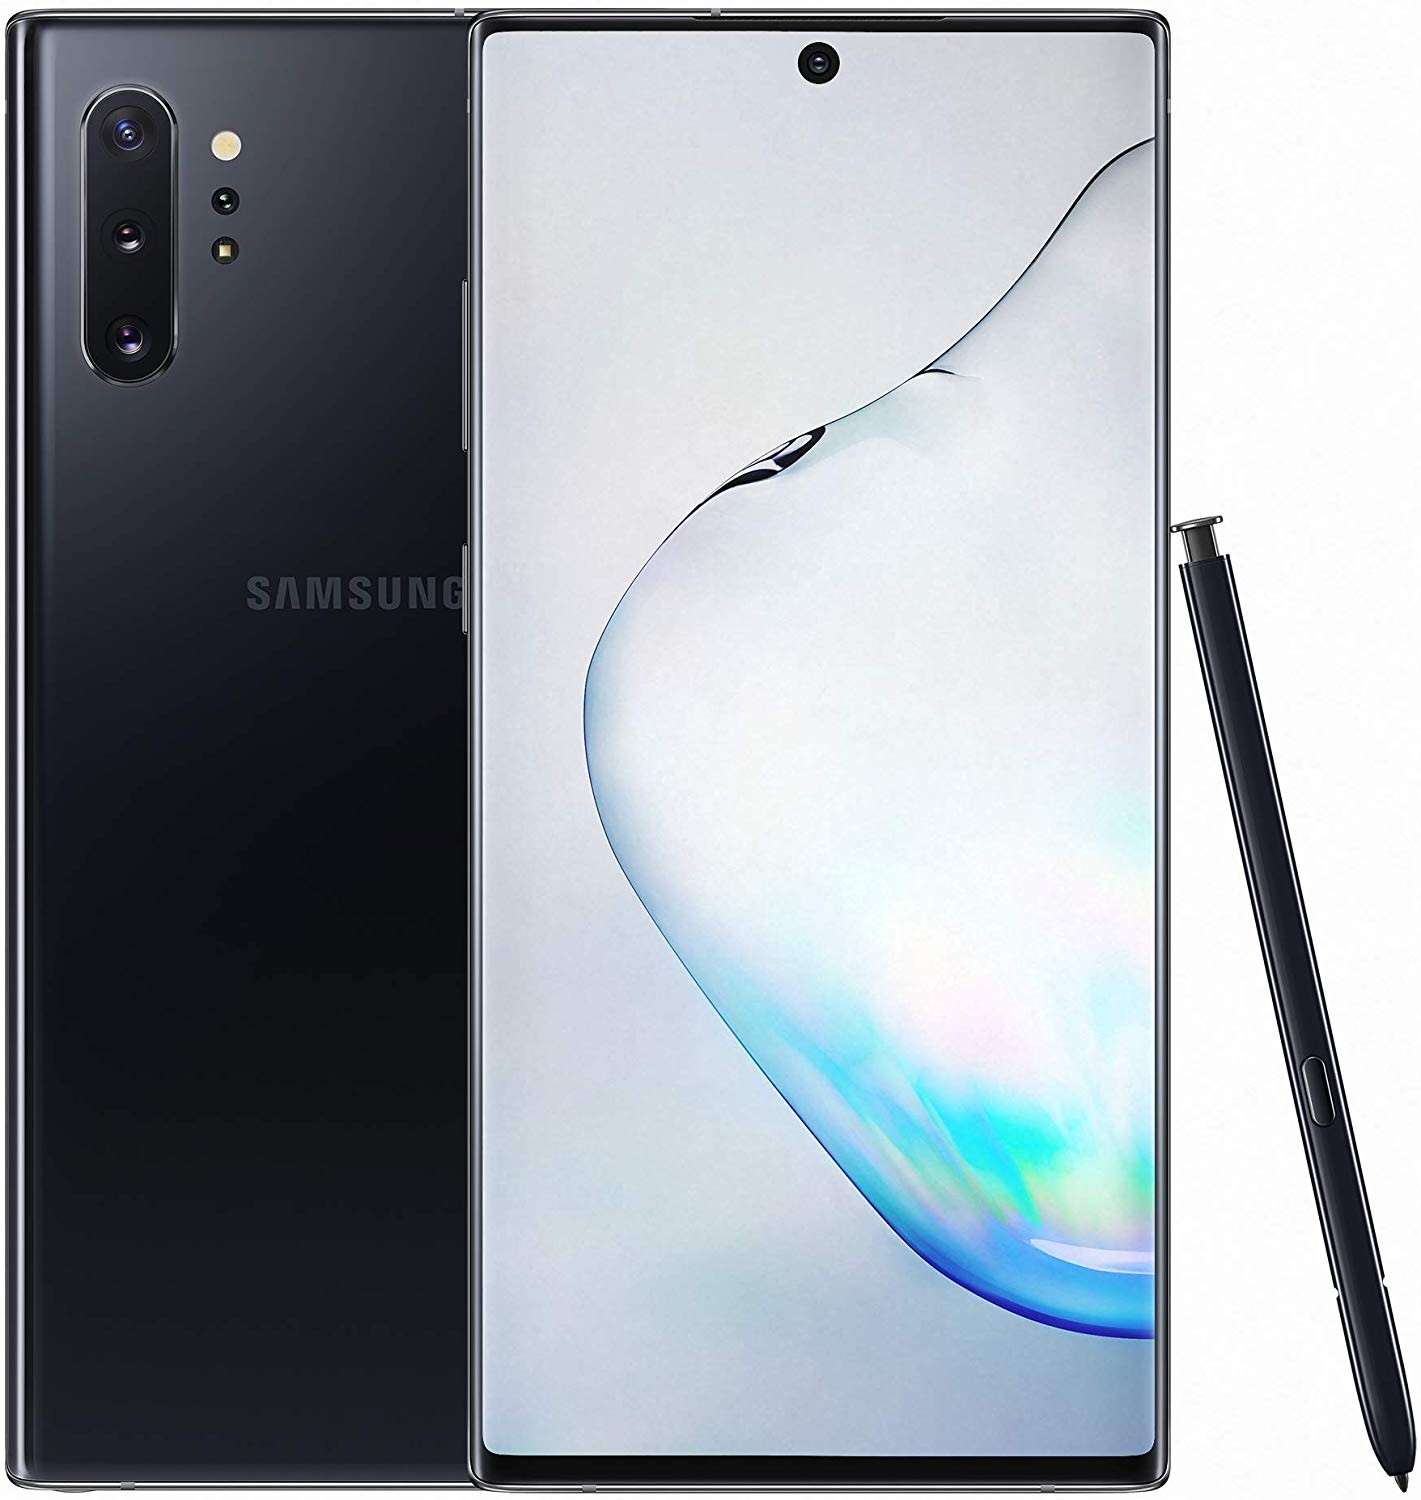 Samsung Galaxy Note 10+ Dual SIM - 256GB, 12GB RAM, Aura Black